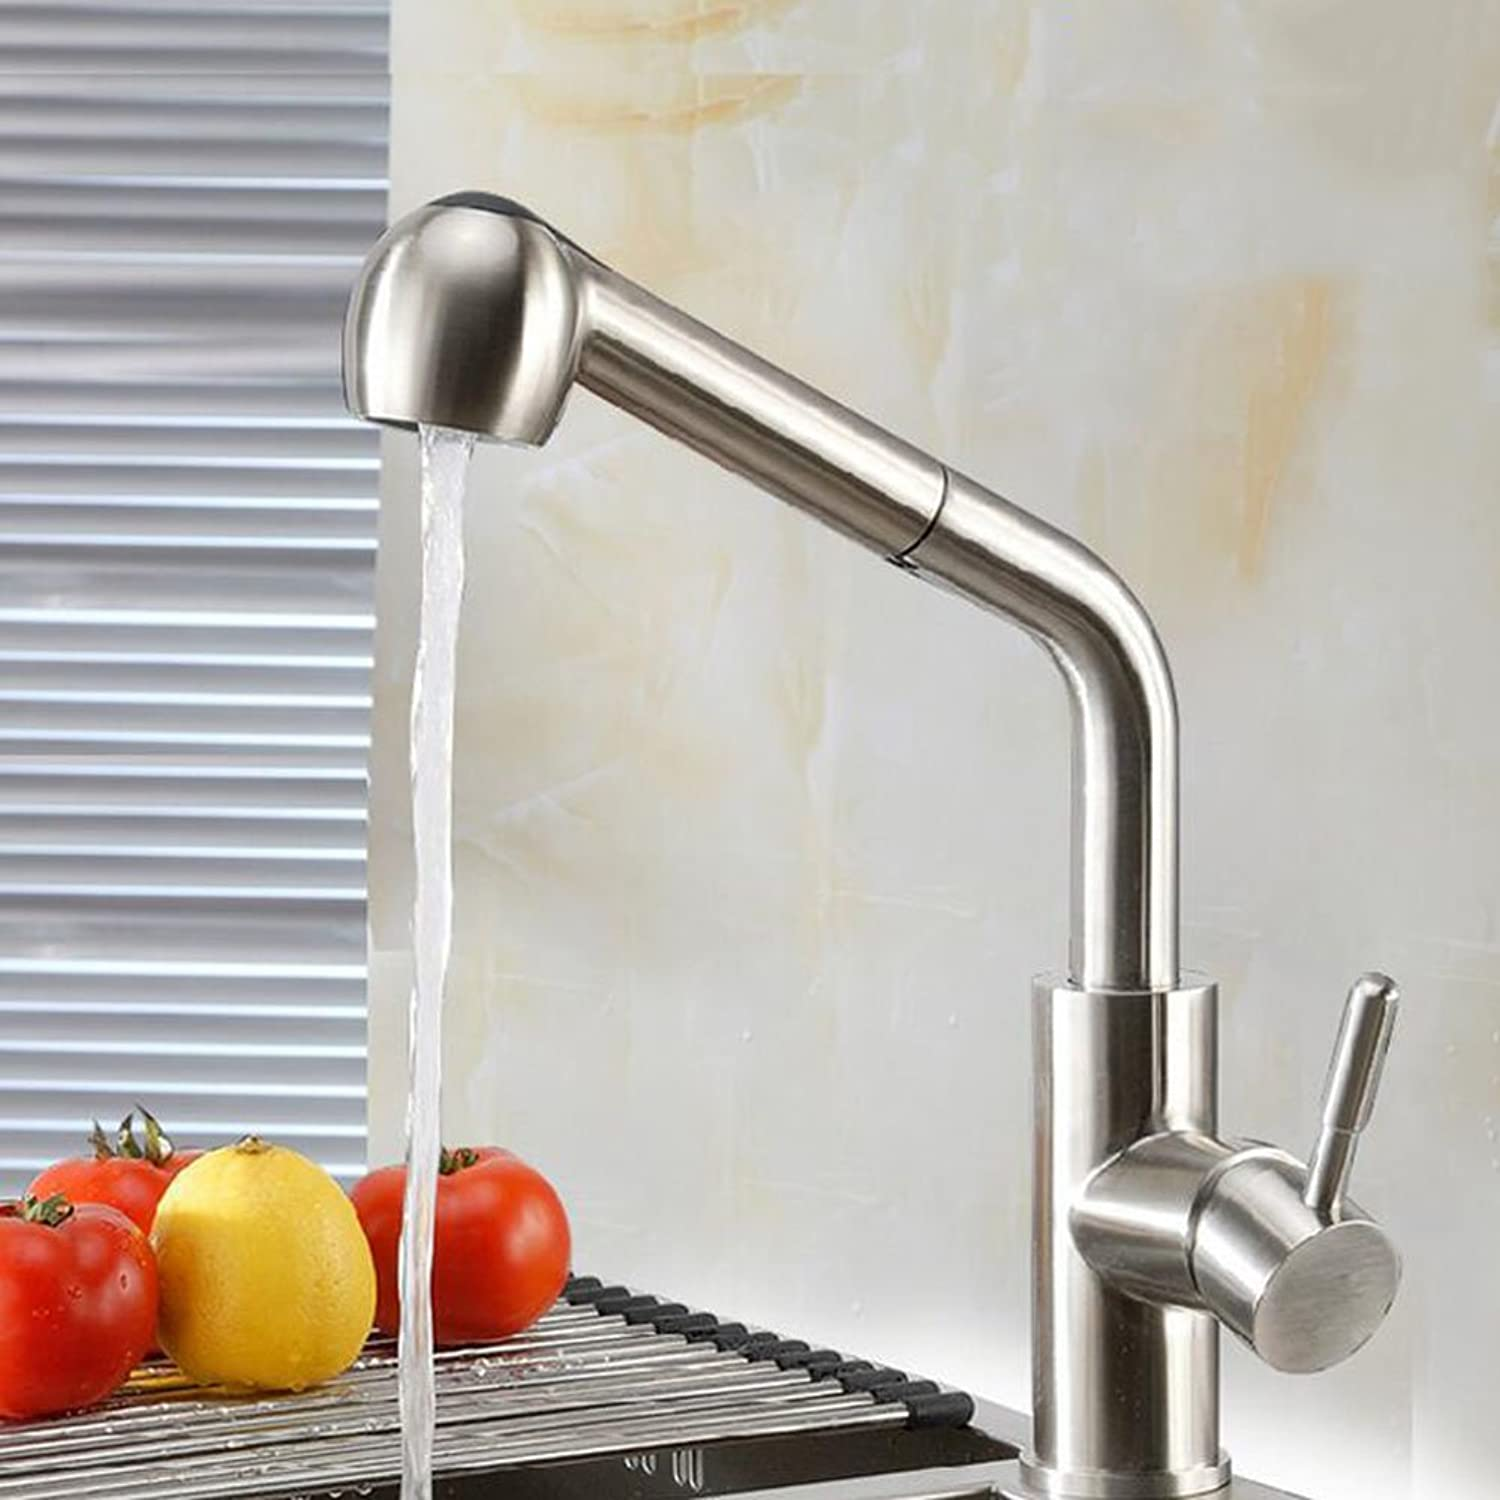 Kitchen Sink Mixer Tap Stainless Steel 360° Swivel Faucet Pull Out Kitchen Tap Basin Mixer Tap